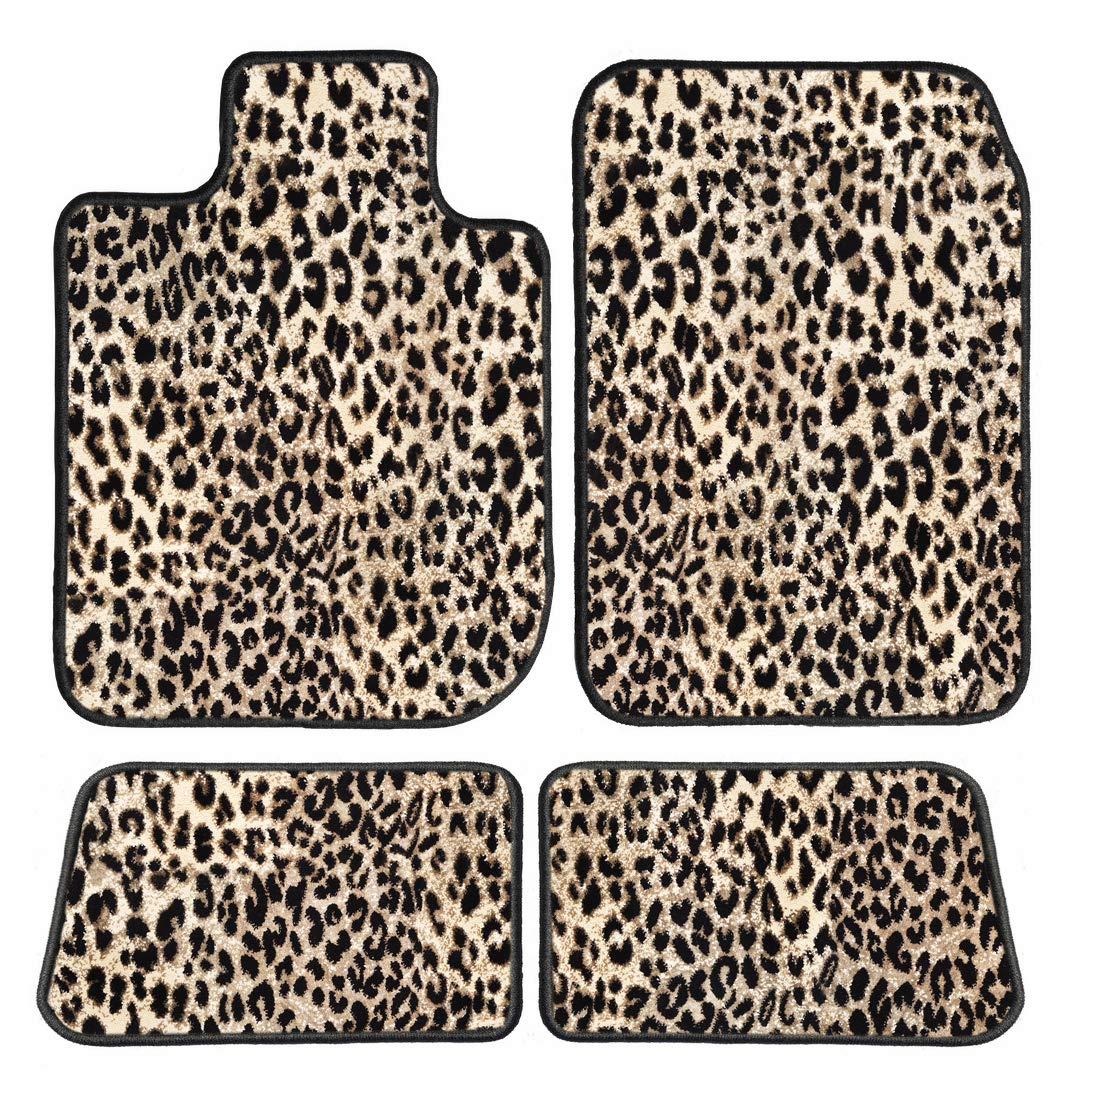 2011 Toyota Sequoia Leopard Driver Passenger /& Rear Floor GGBAILEY D4540B-S1A-LP Custom Fit Car Mats for 2008 2010 2009